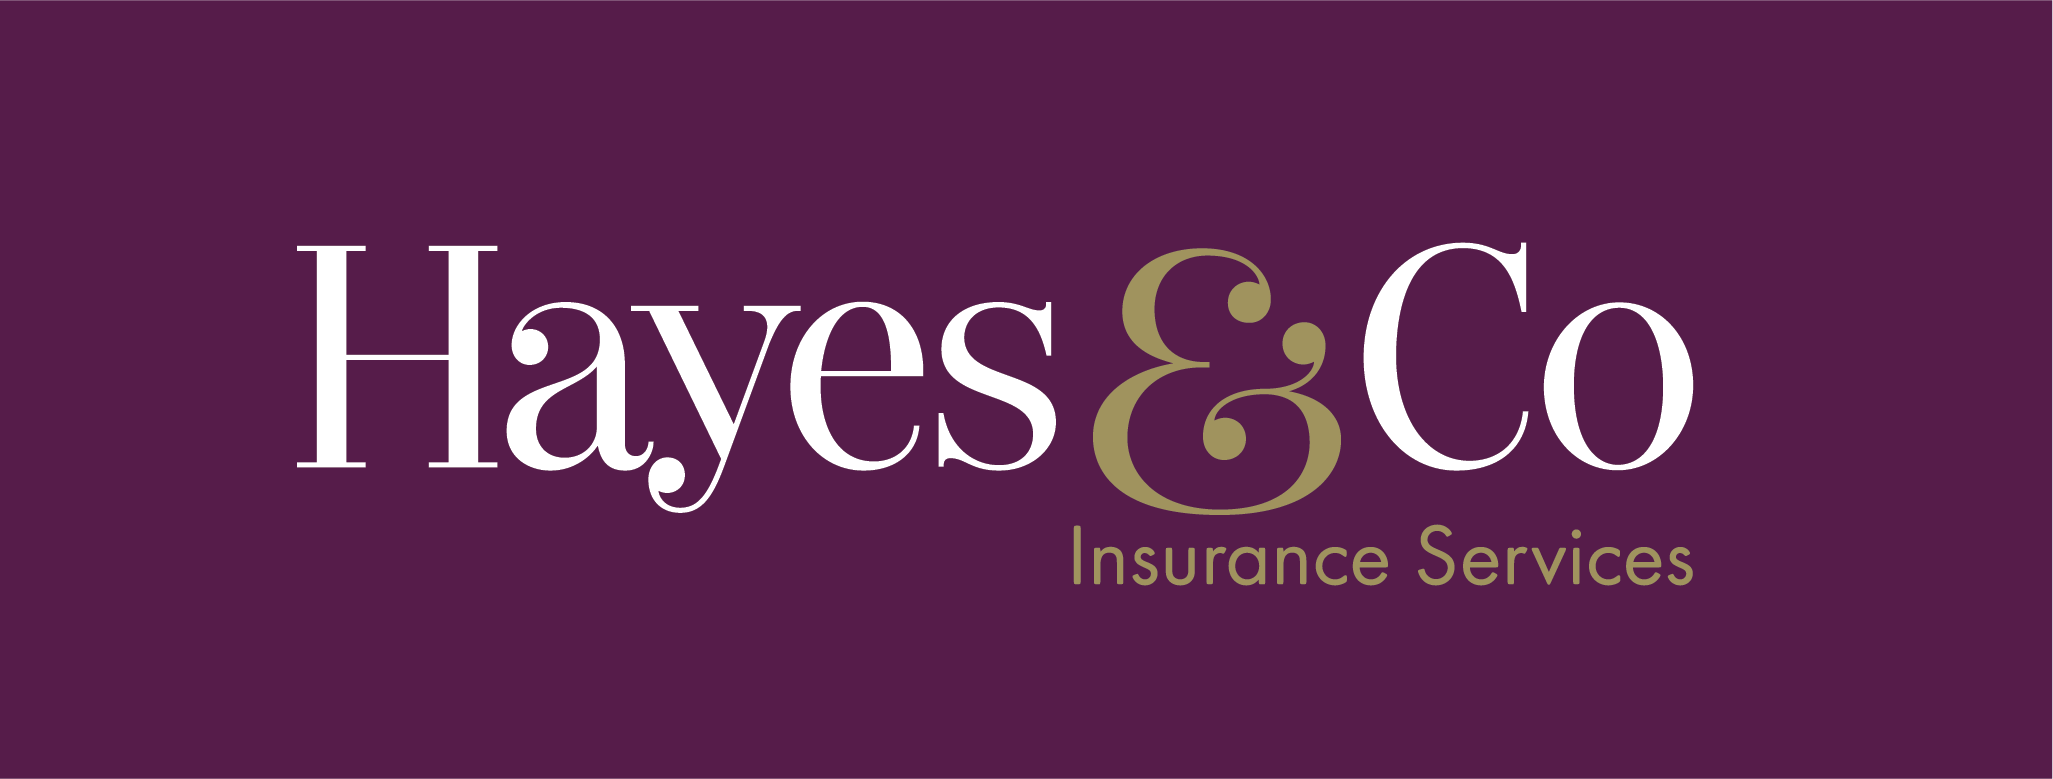 Hayes & Co Insurance Services